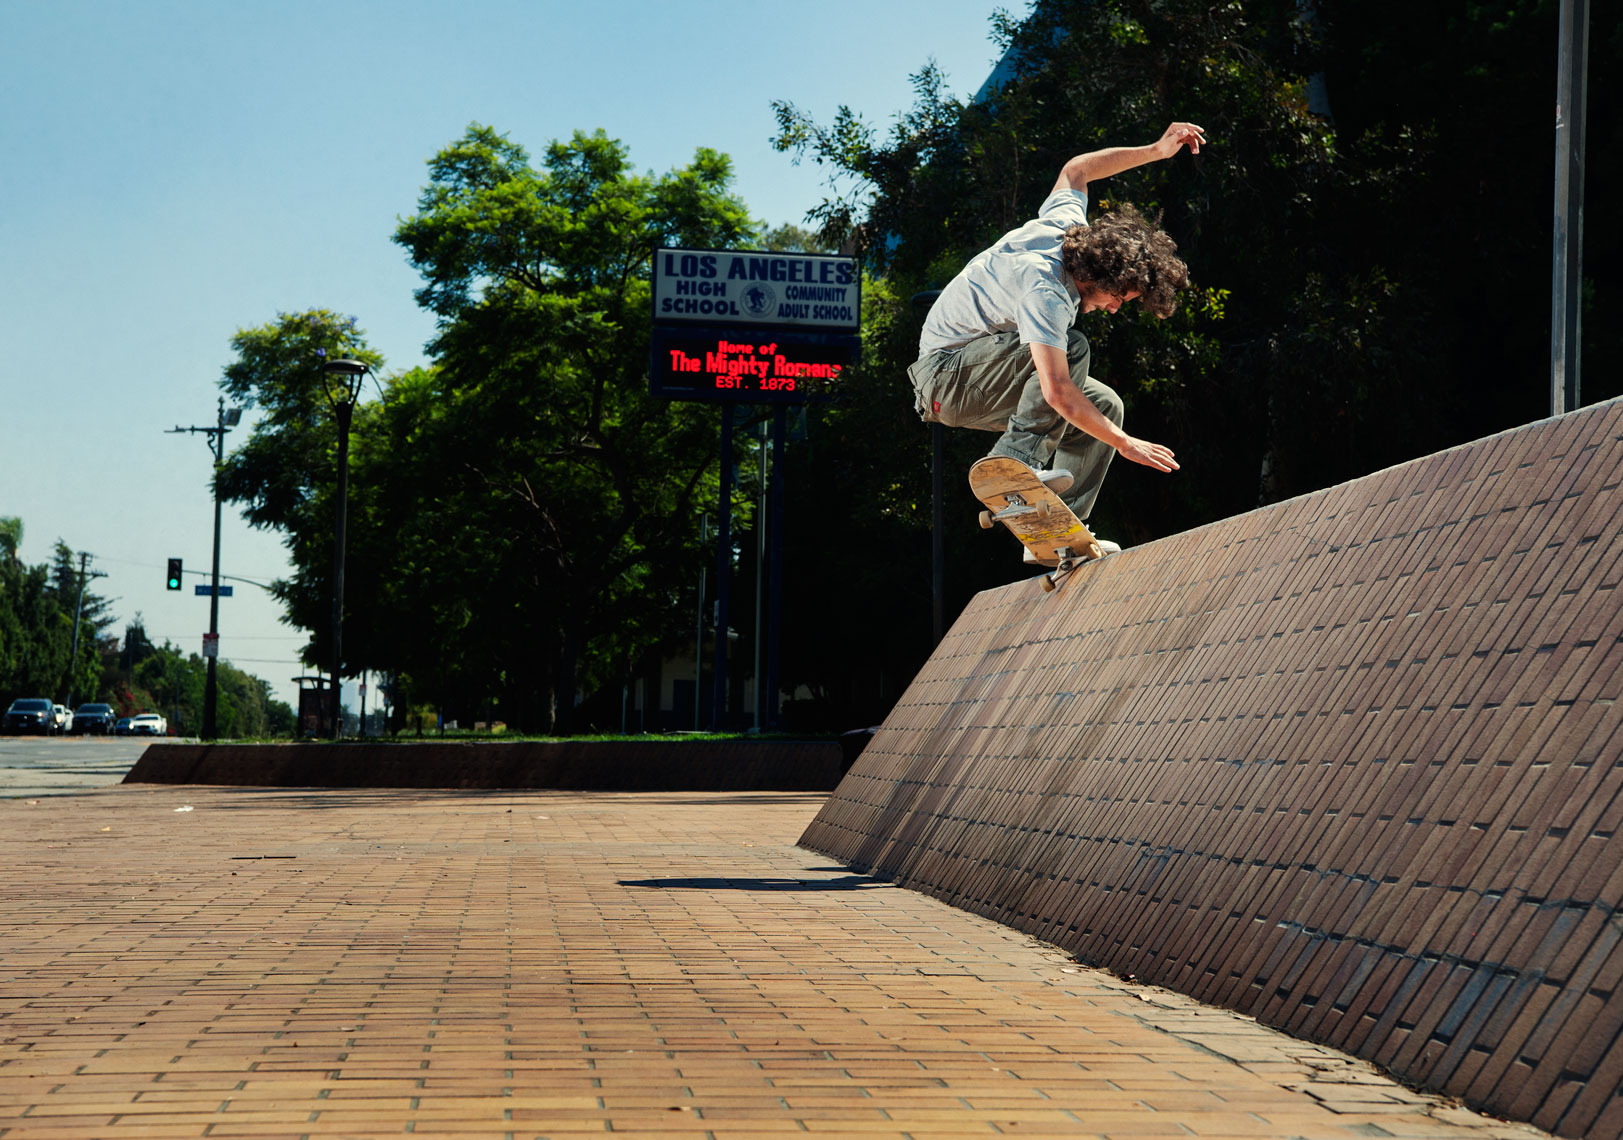 antonio_durao_switch_fs_crook